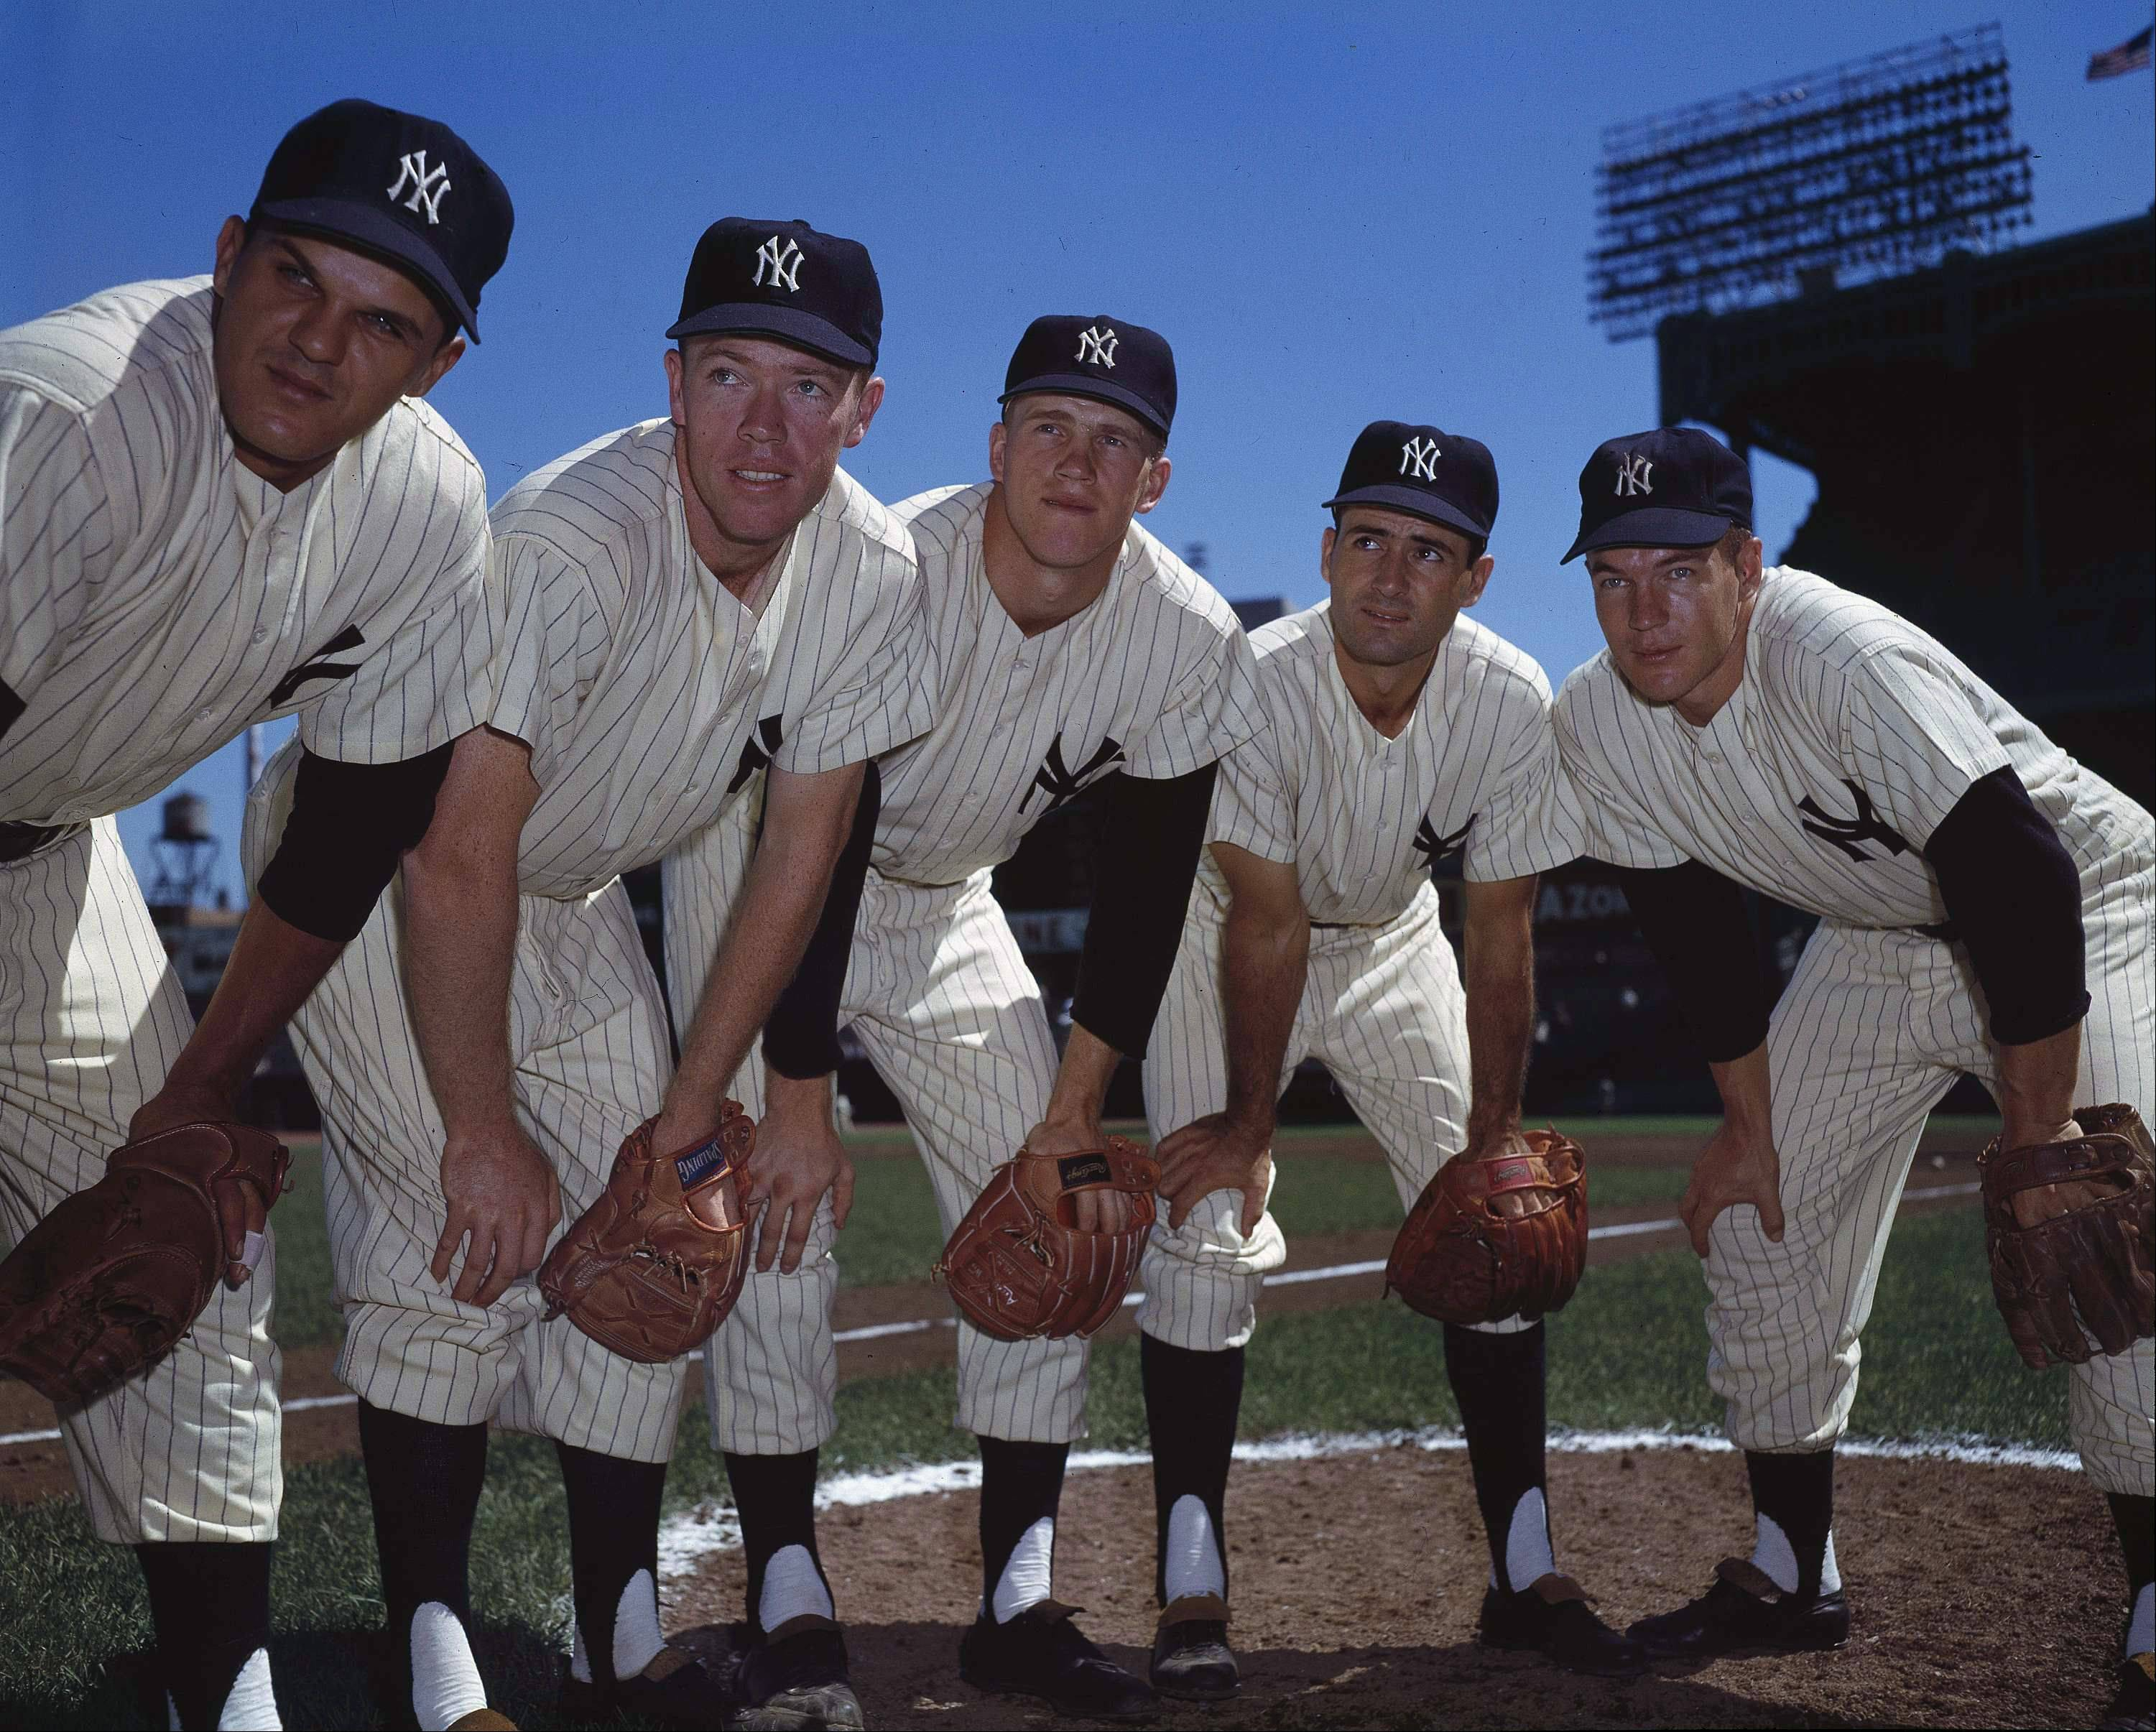 From left to right Bill Skowron, Gil McDougald, Tony Kubek, Gerry Coleman; Andy Carey, from the New York Yankees are shown in this Sept. 5, 1957 photo.